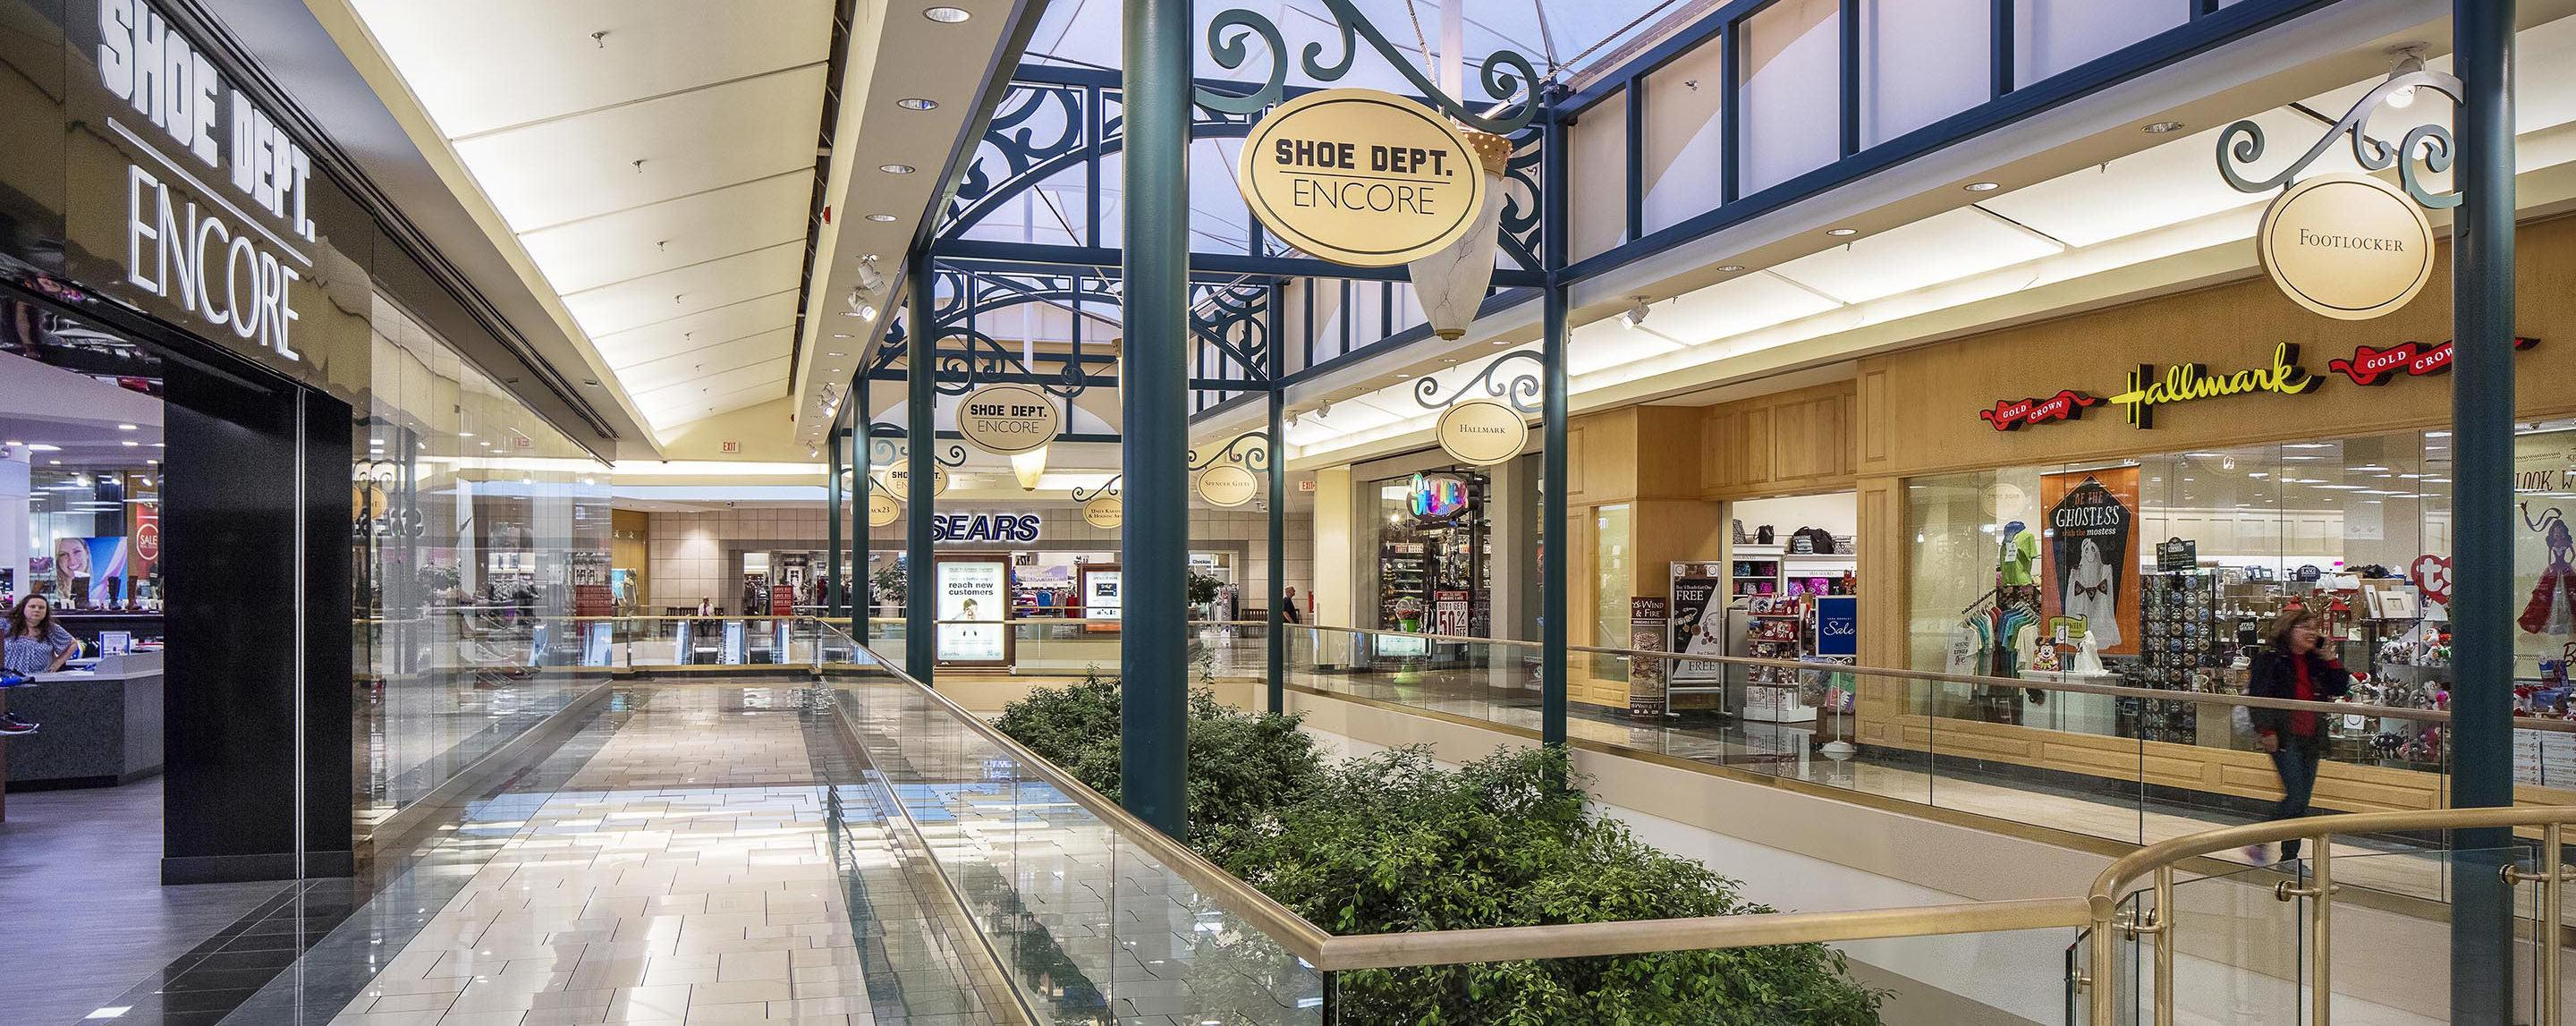 The Shoppes at Buckland Hills image 5